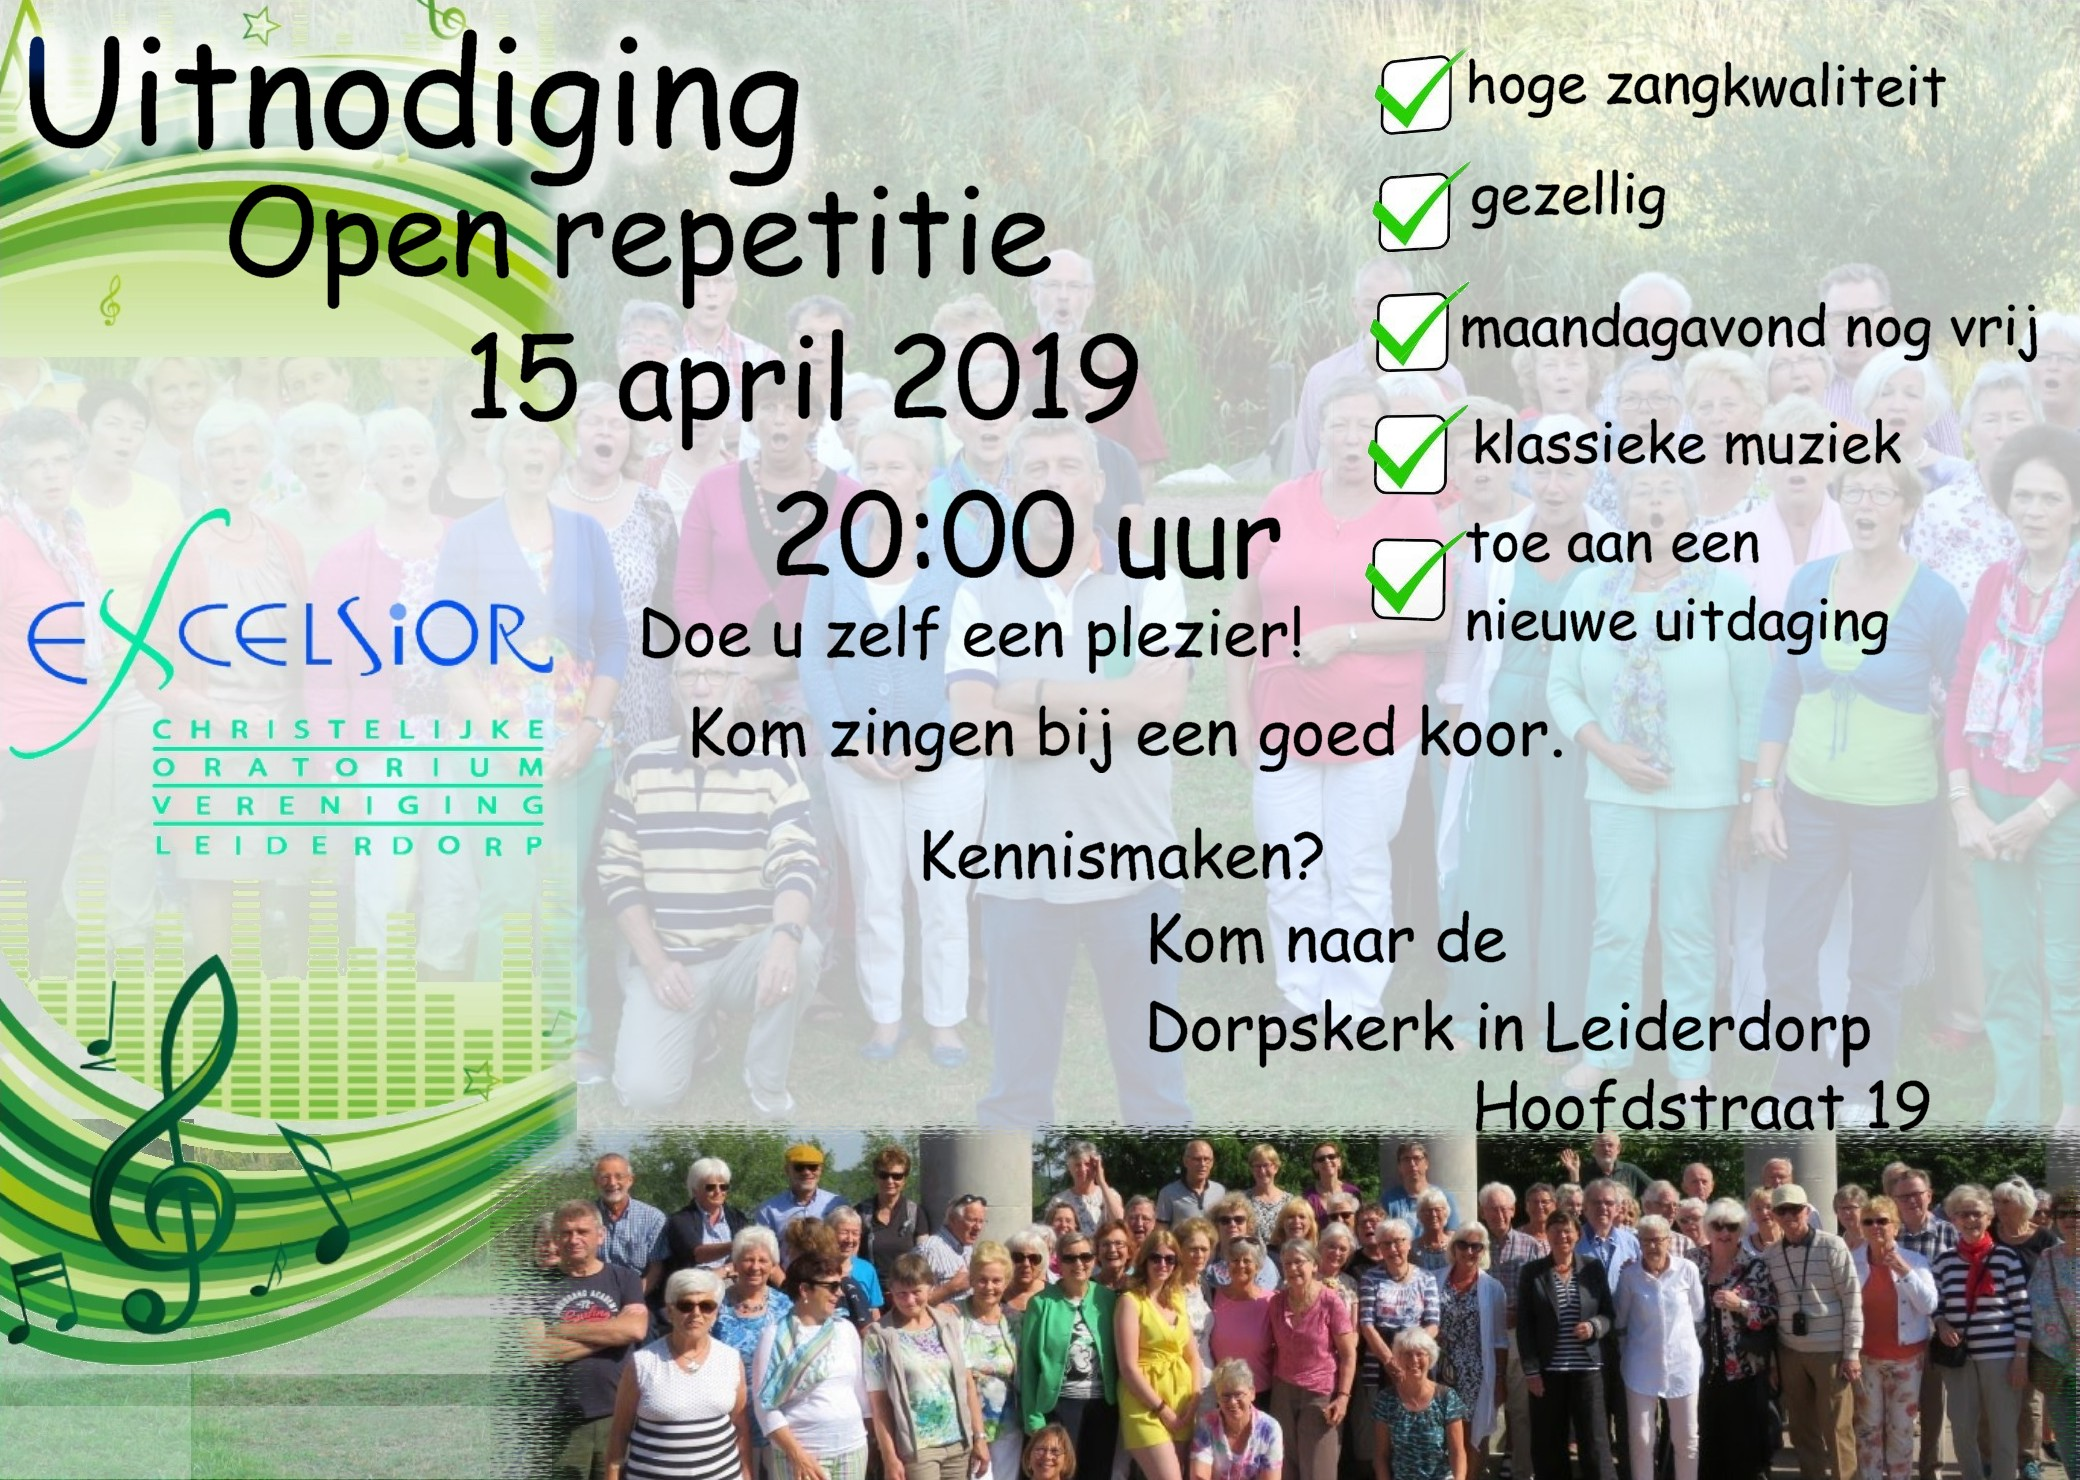 Open repetitie